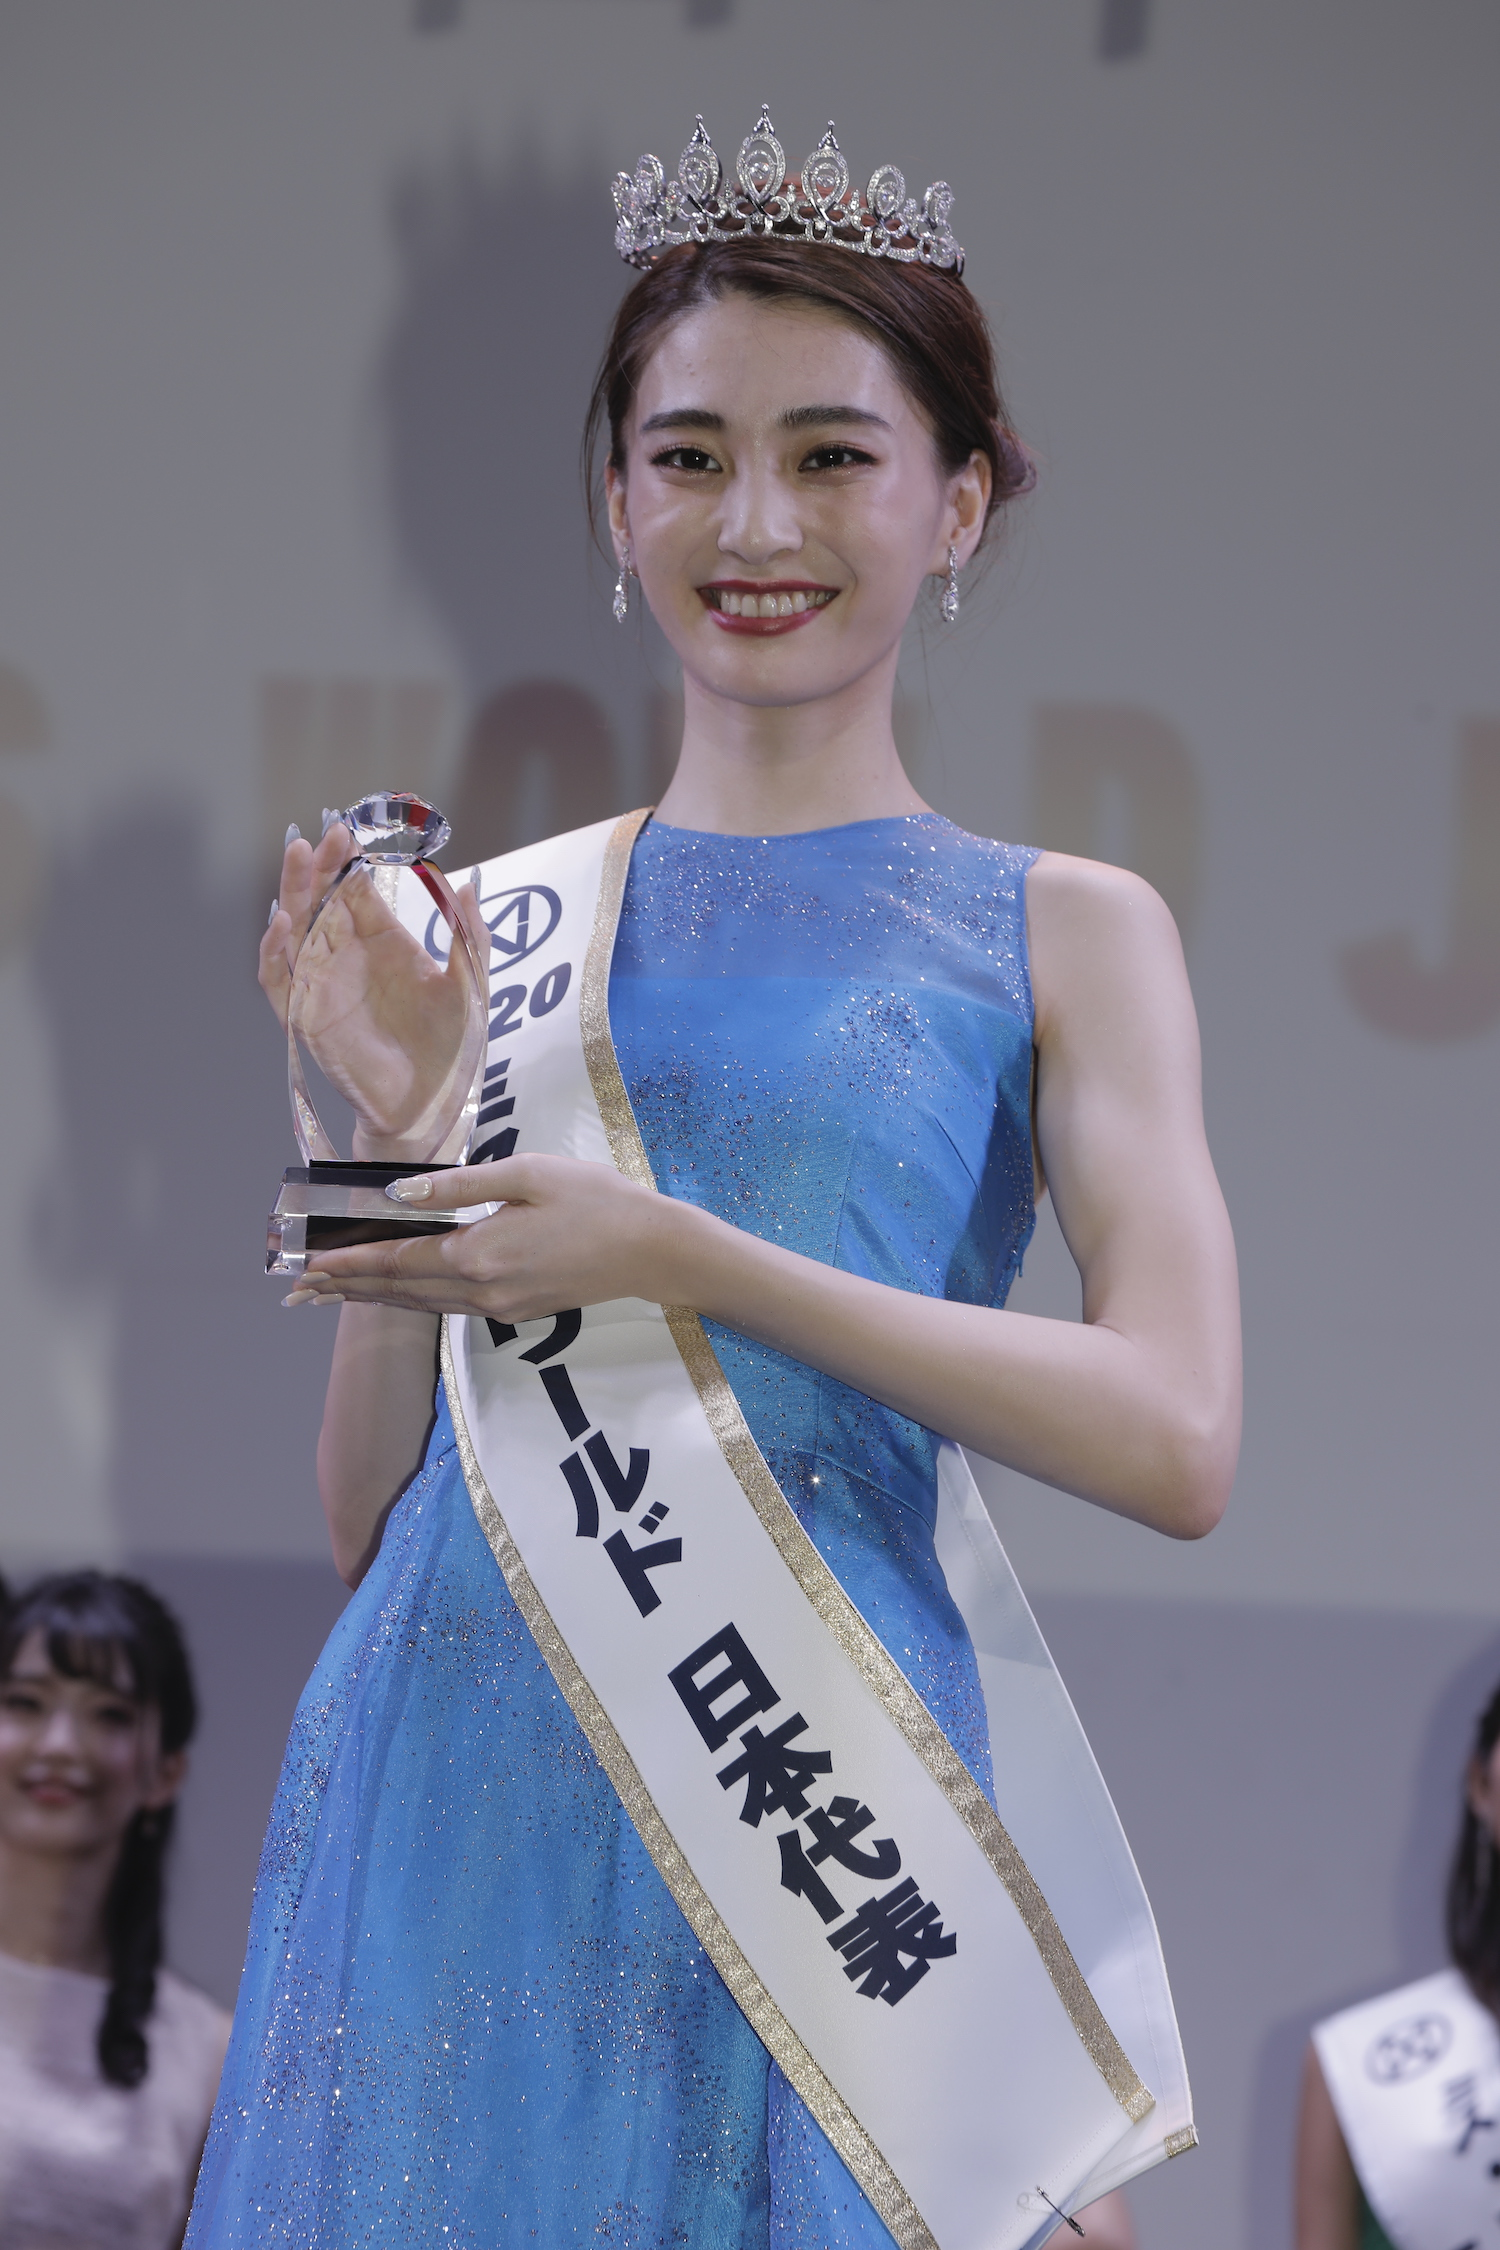 金谷鞠杏/MISS WORLD JAPAN 2020